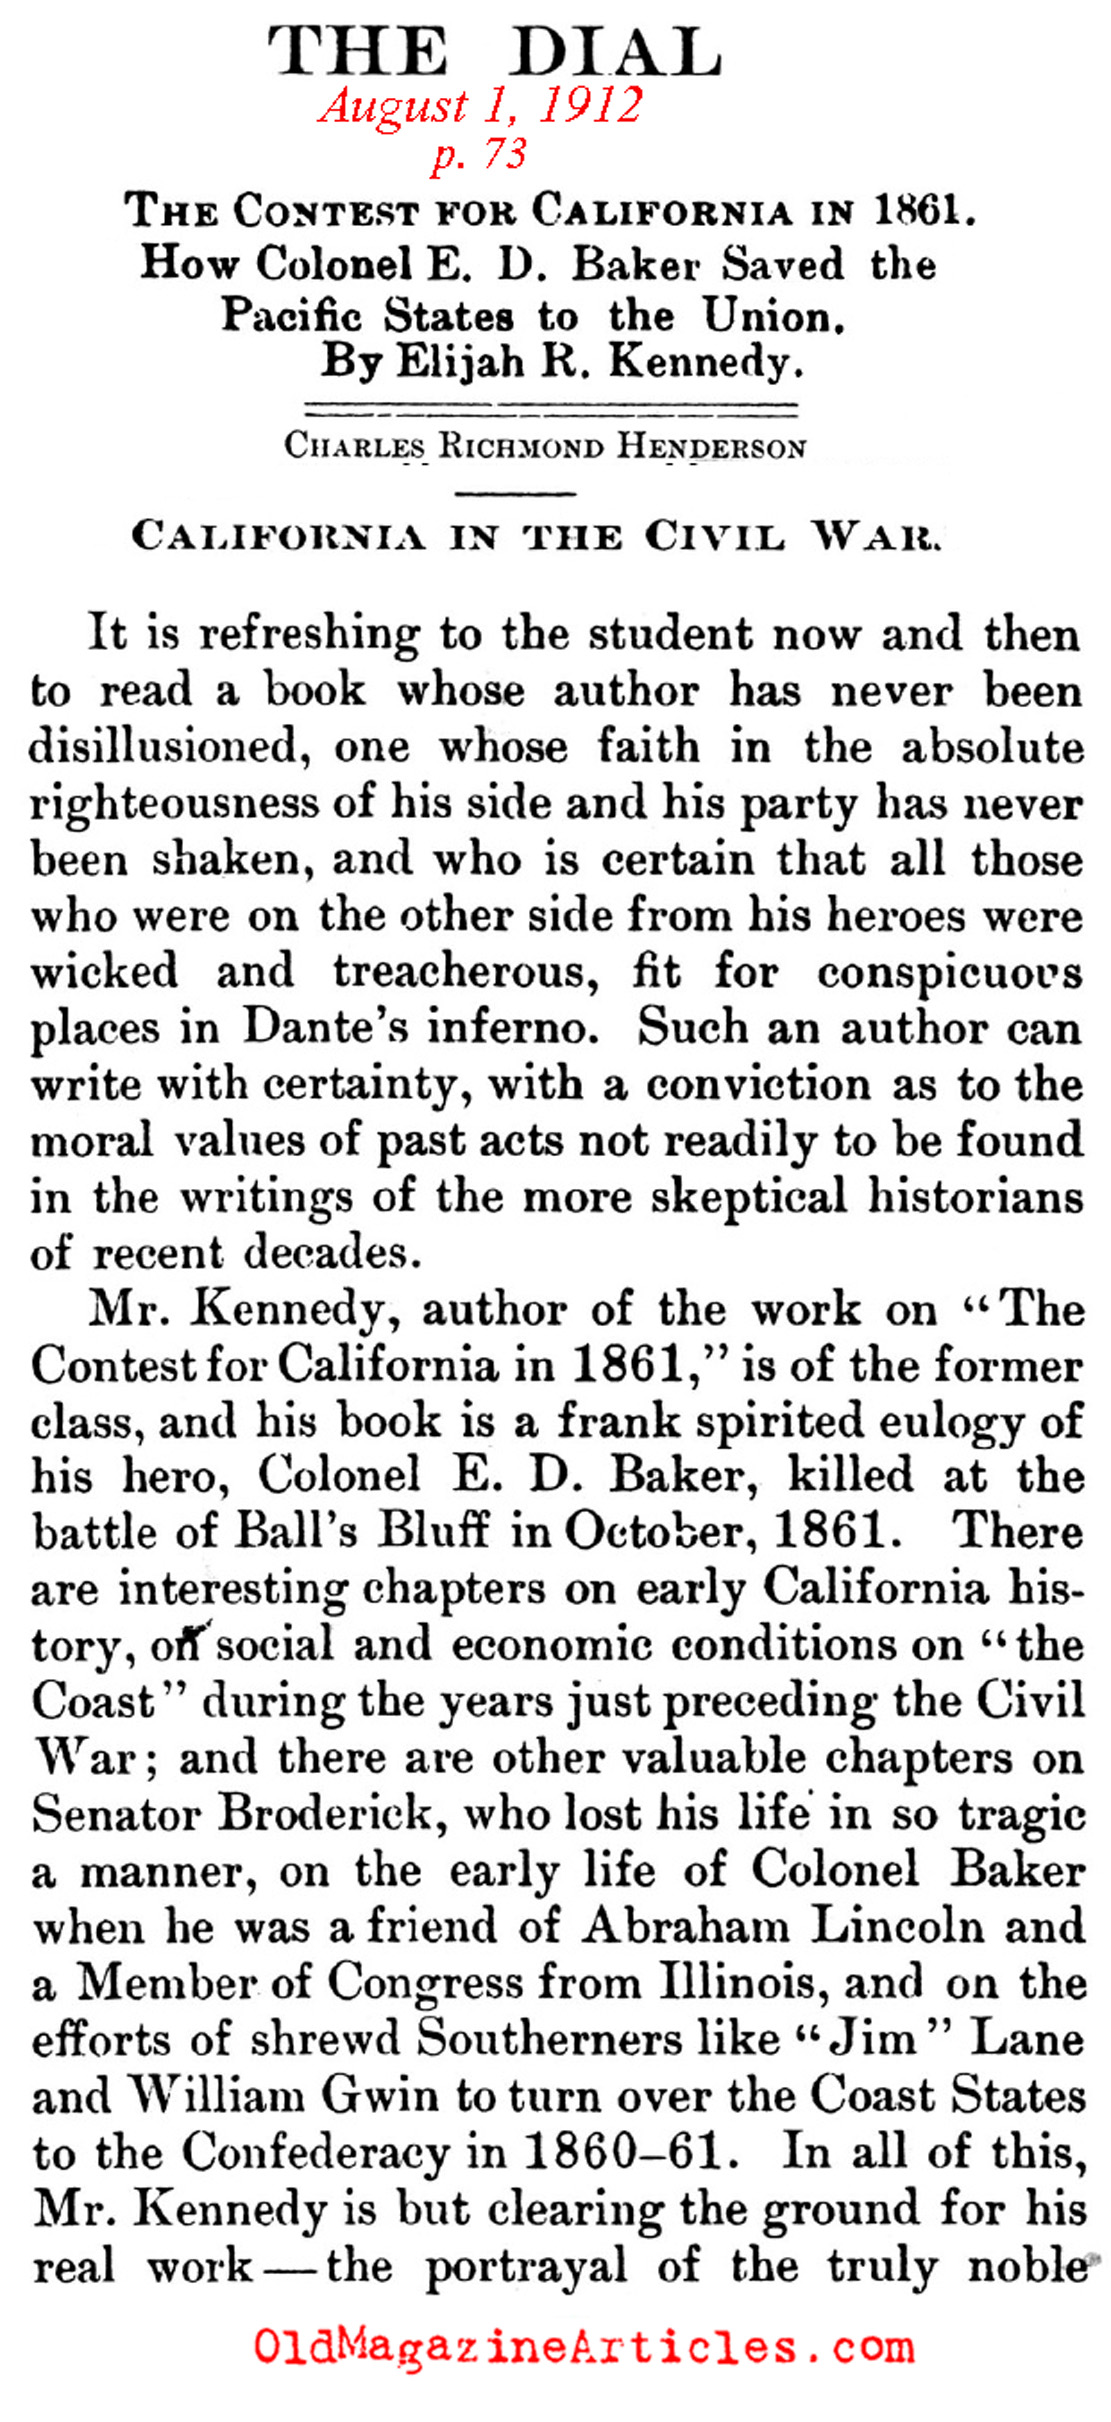 The Struggle for California  (The Dial Magazine, 1912)